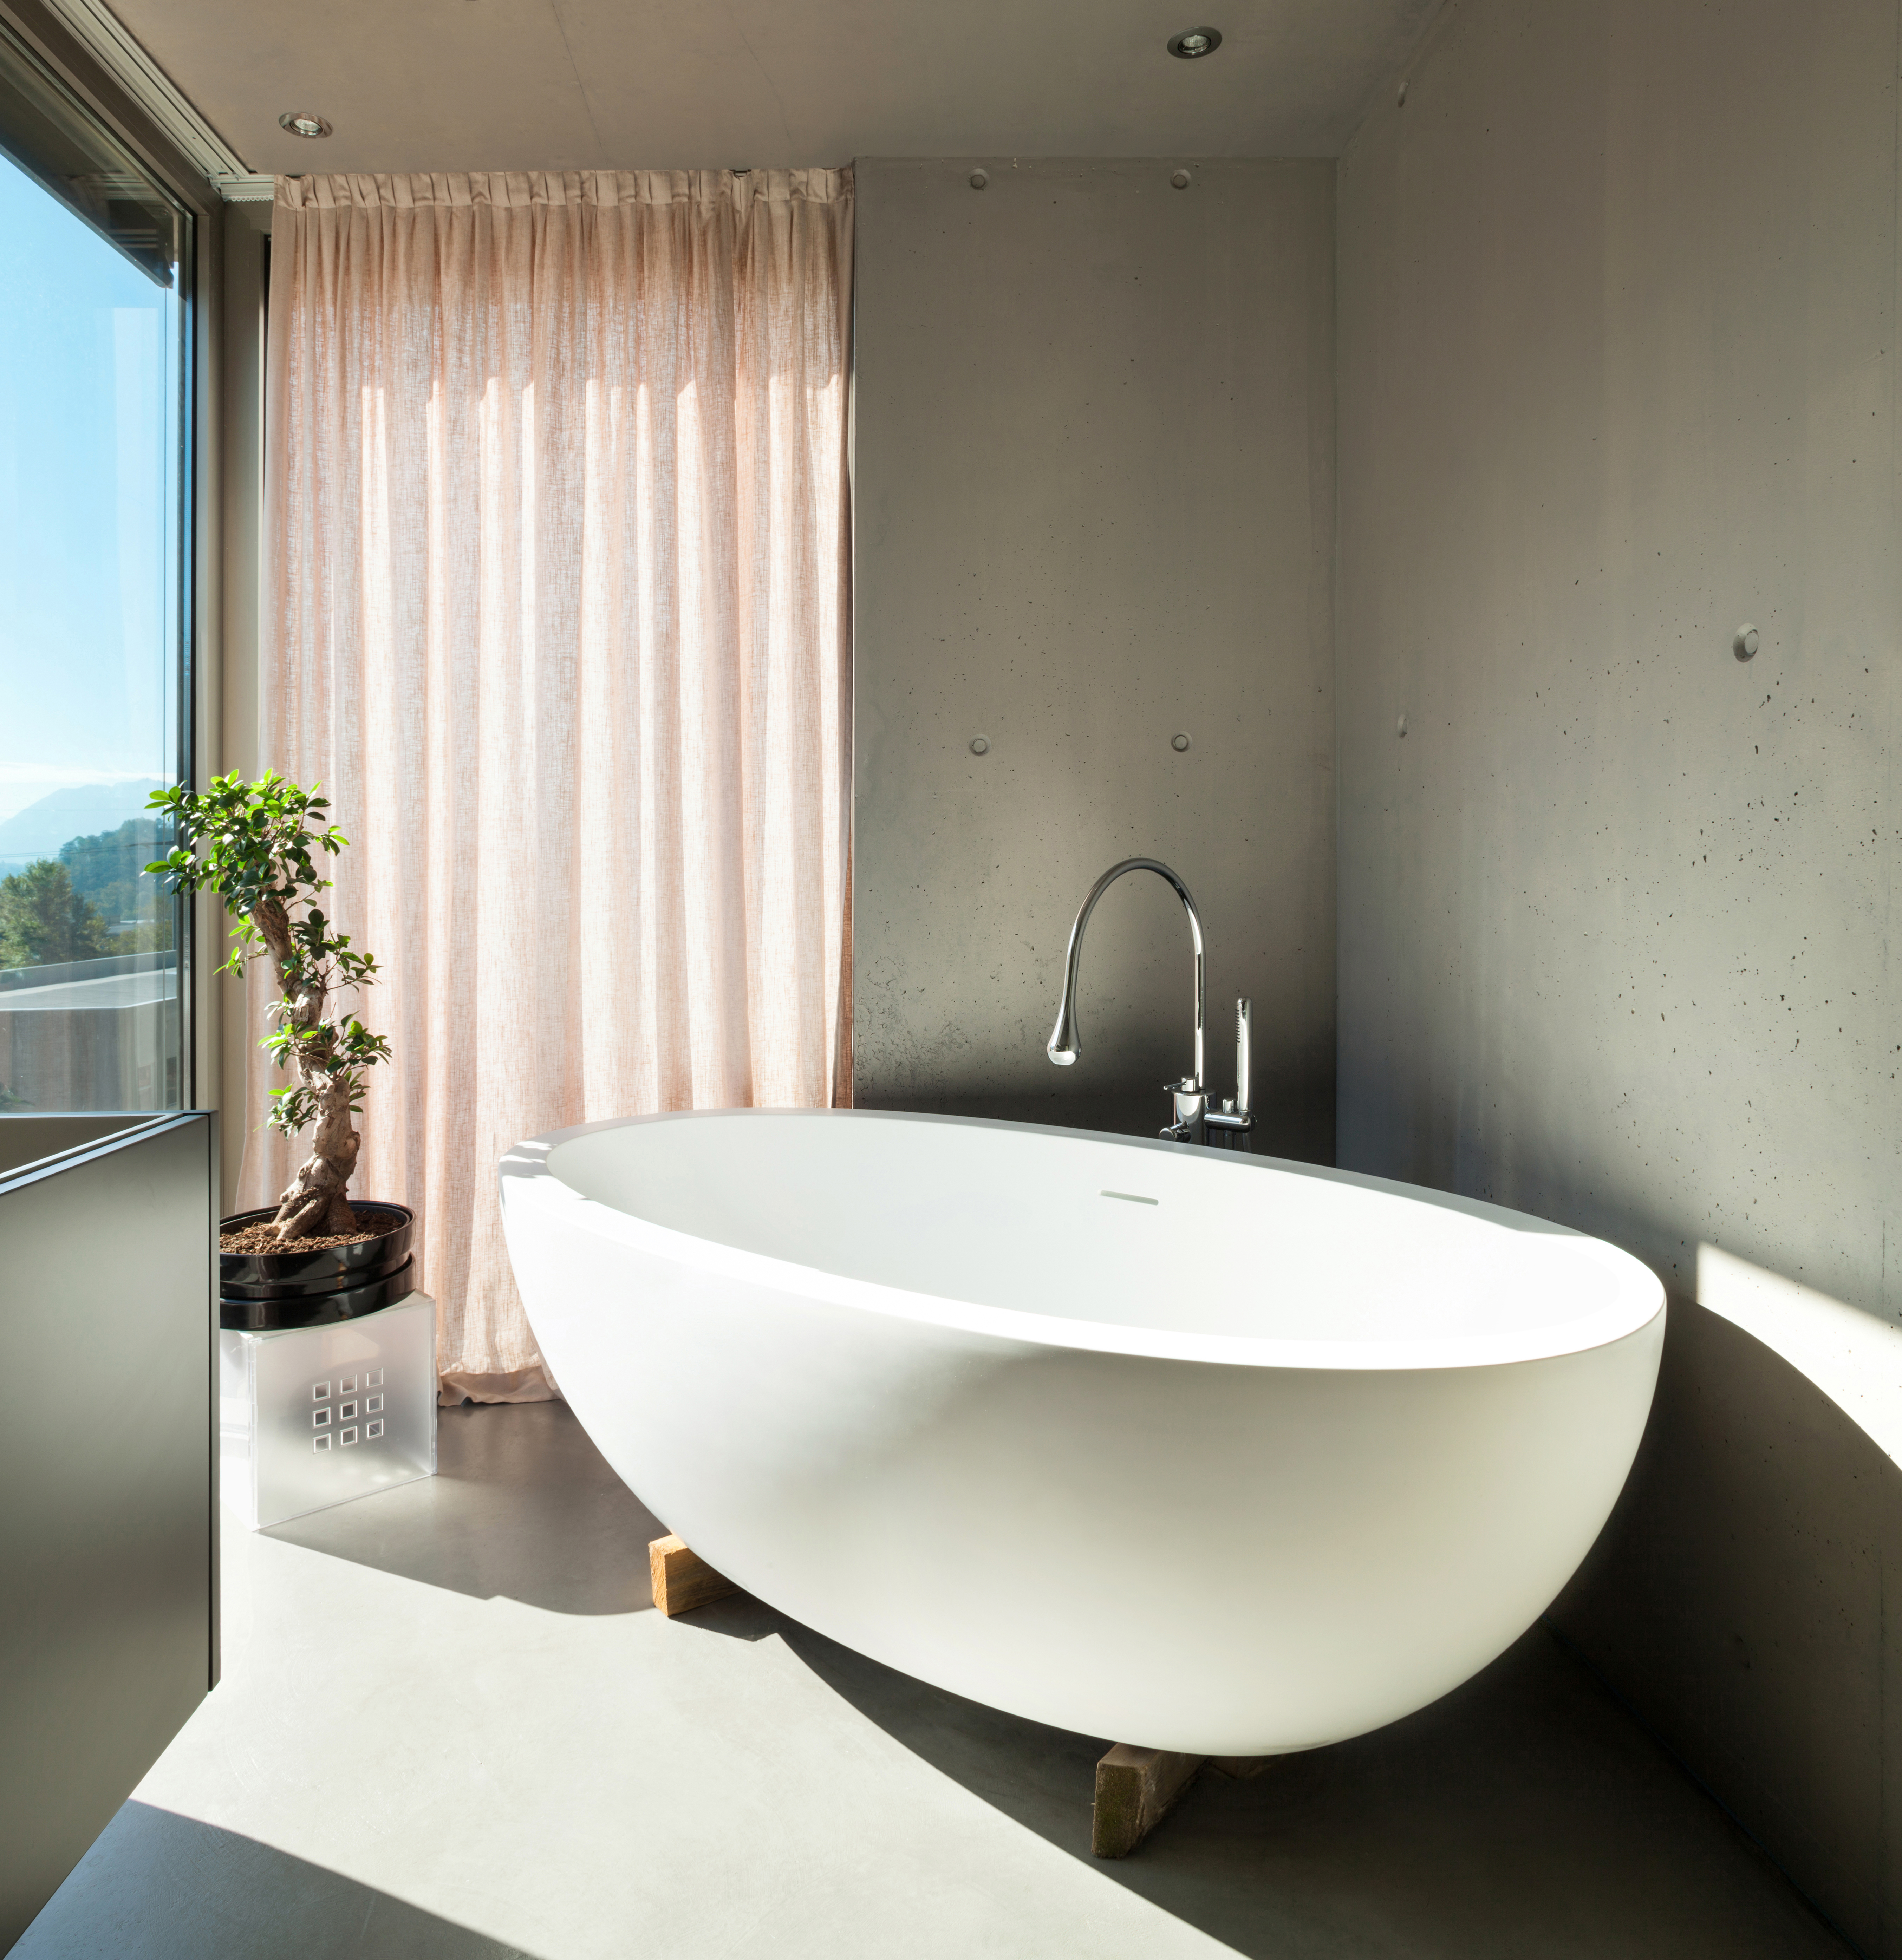 What is the most comfortable style of bathtub?